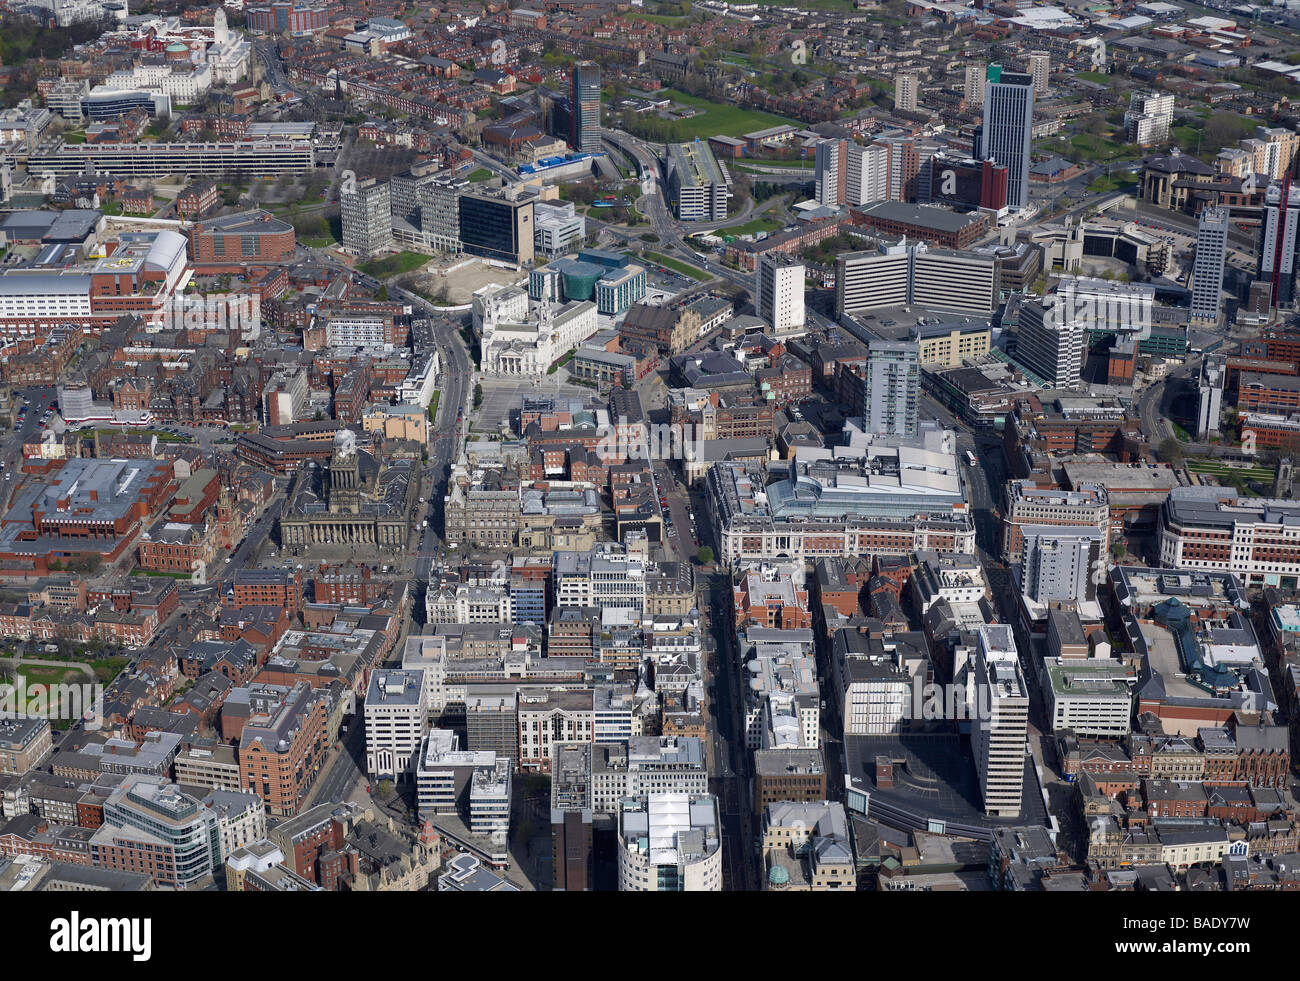 Aerial View of Leeds City Centre Civic area, 2009, Northern England - Stock Image